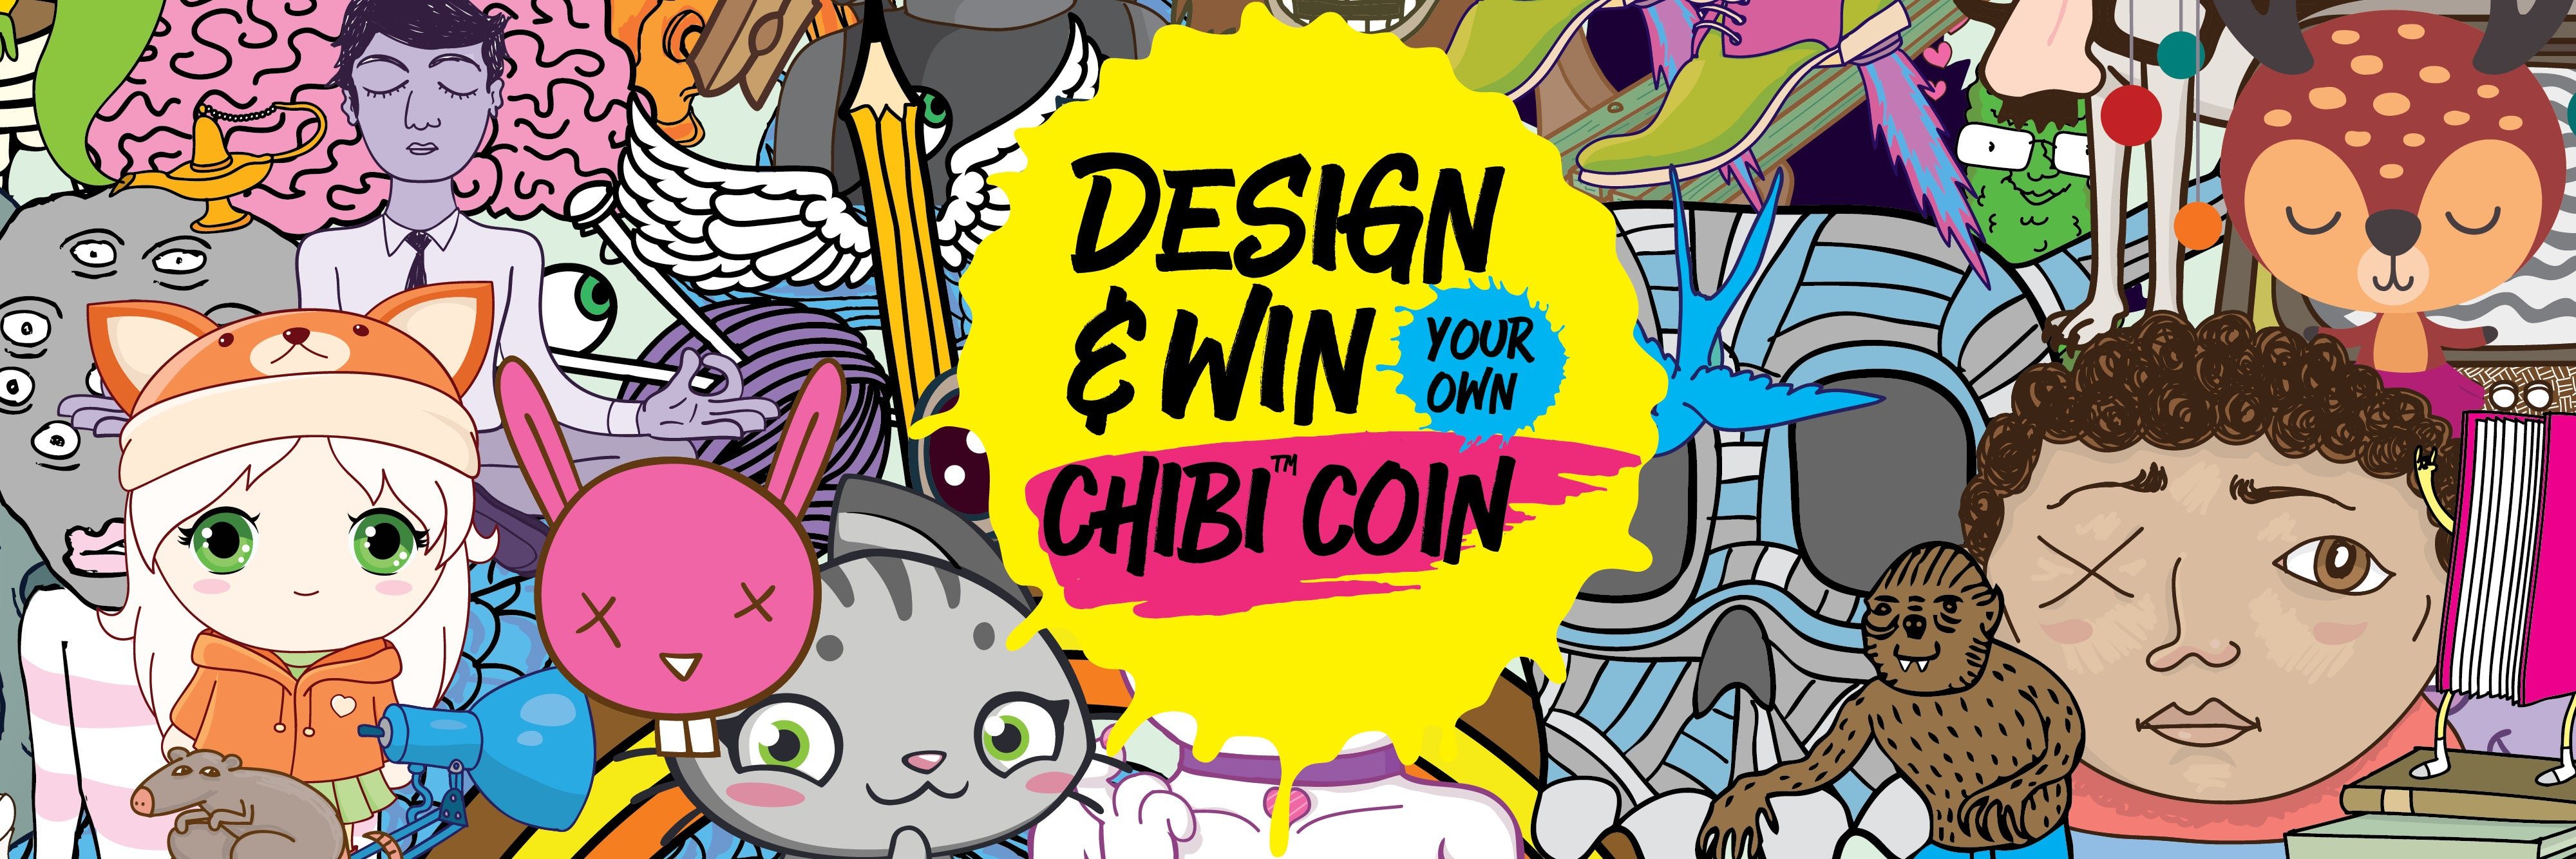 Design a Chibi™ Coin & Win Competition! NZ Mint